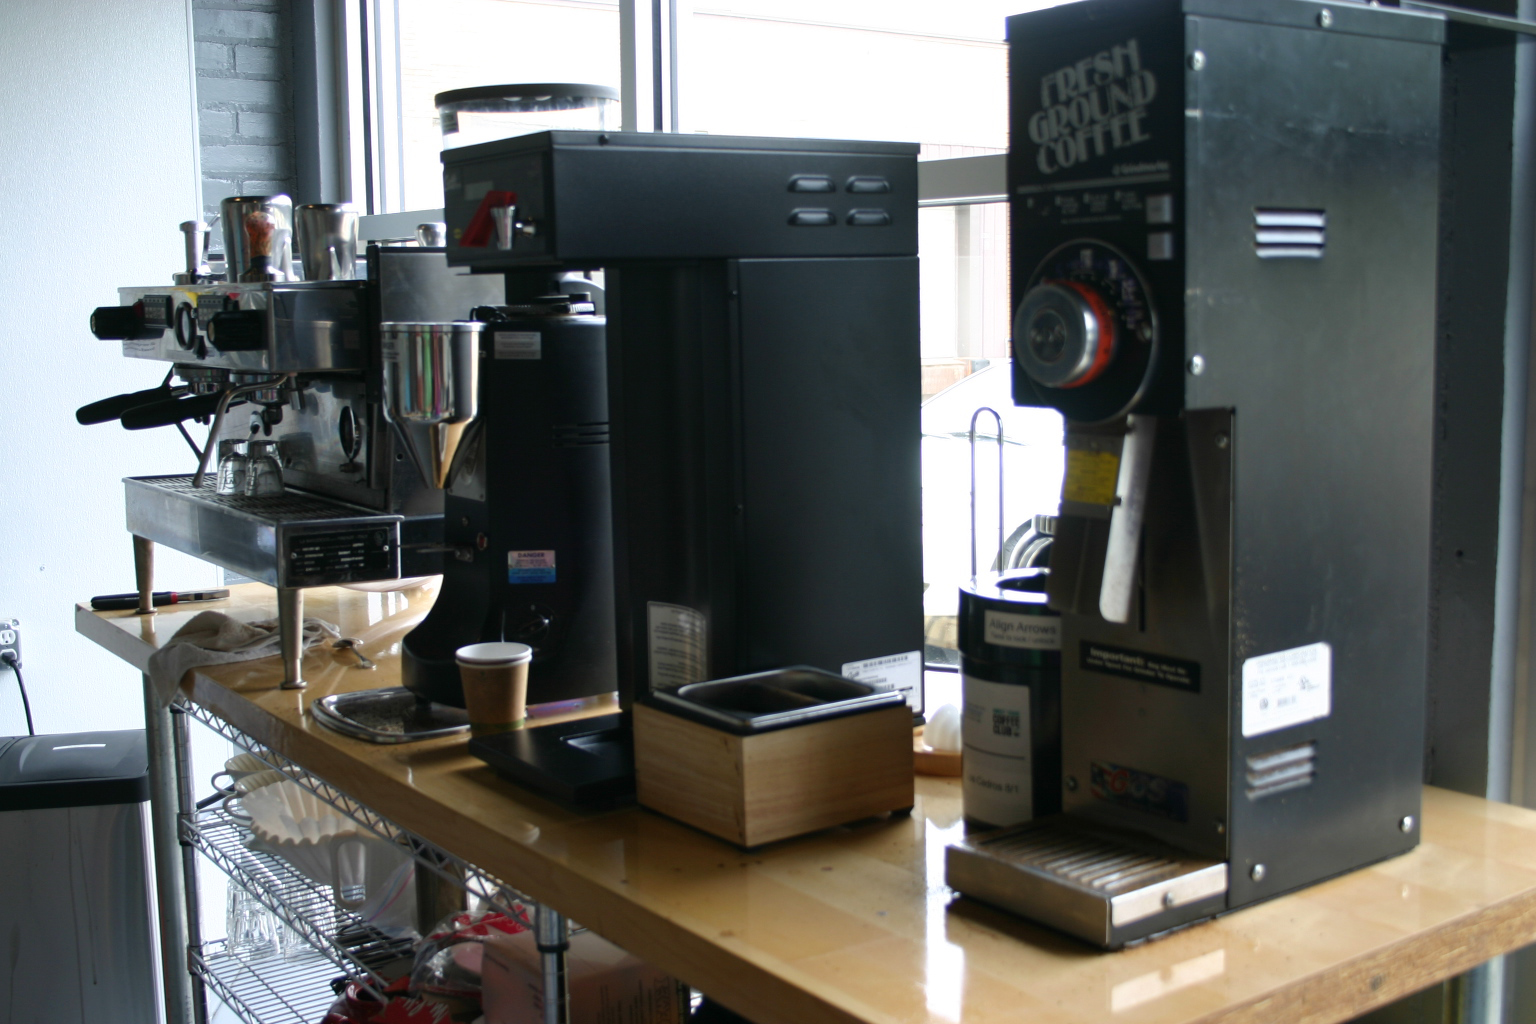 The DTCC coffee grind and brew station